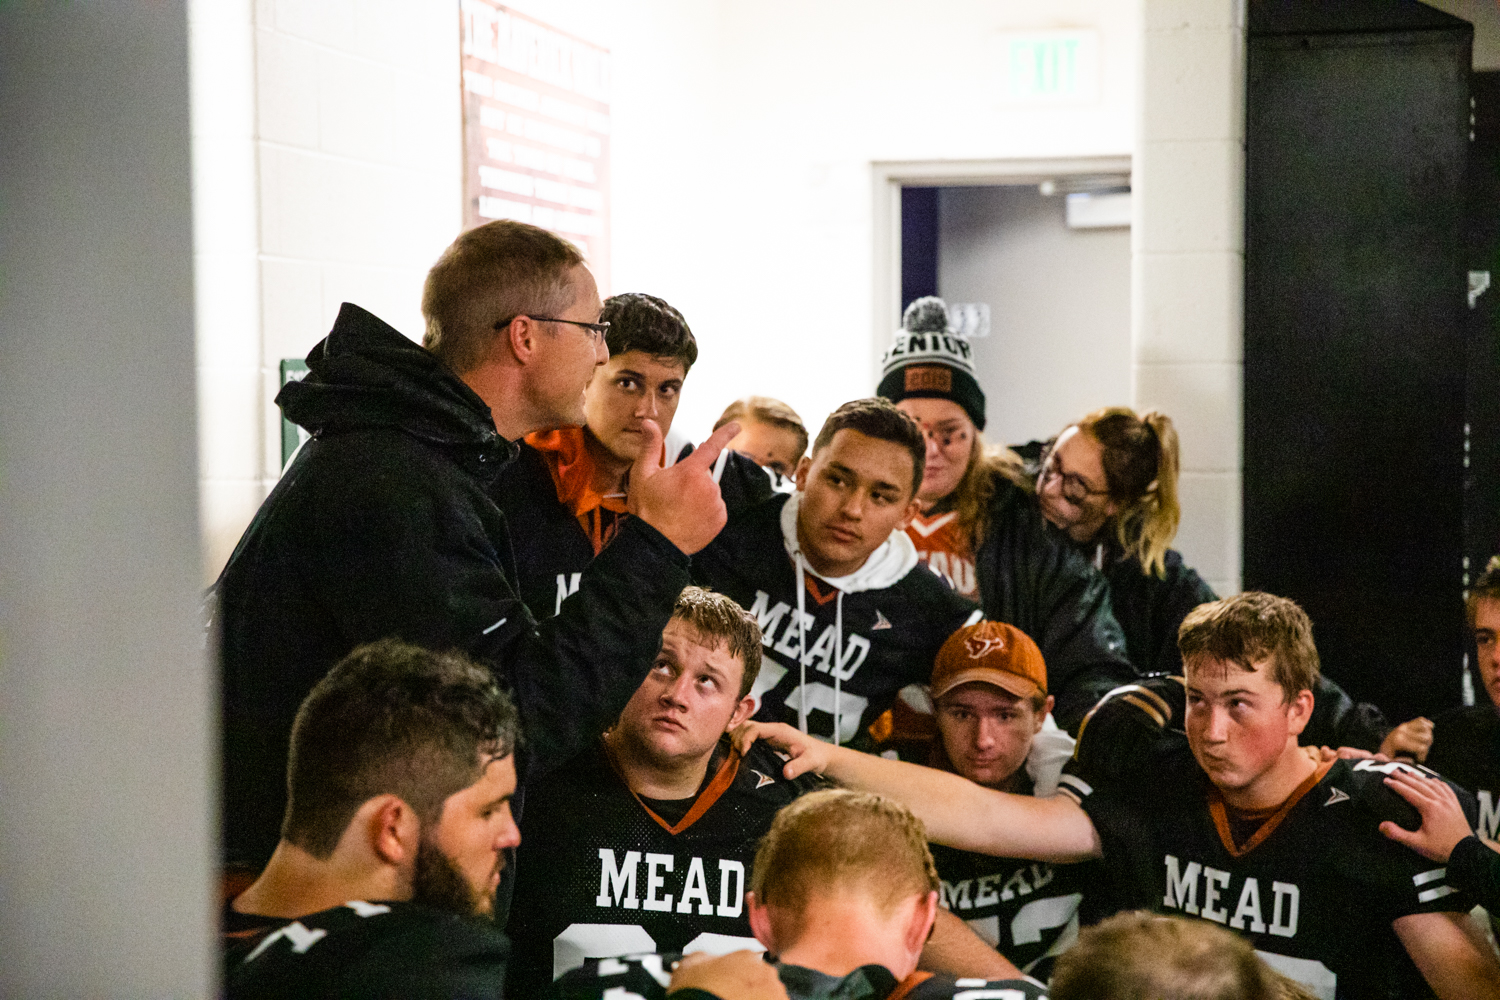 Coach+Klatt+gives+a+pep+talk+to+the+assembled+team+before+they+head+out+to+the+field.